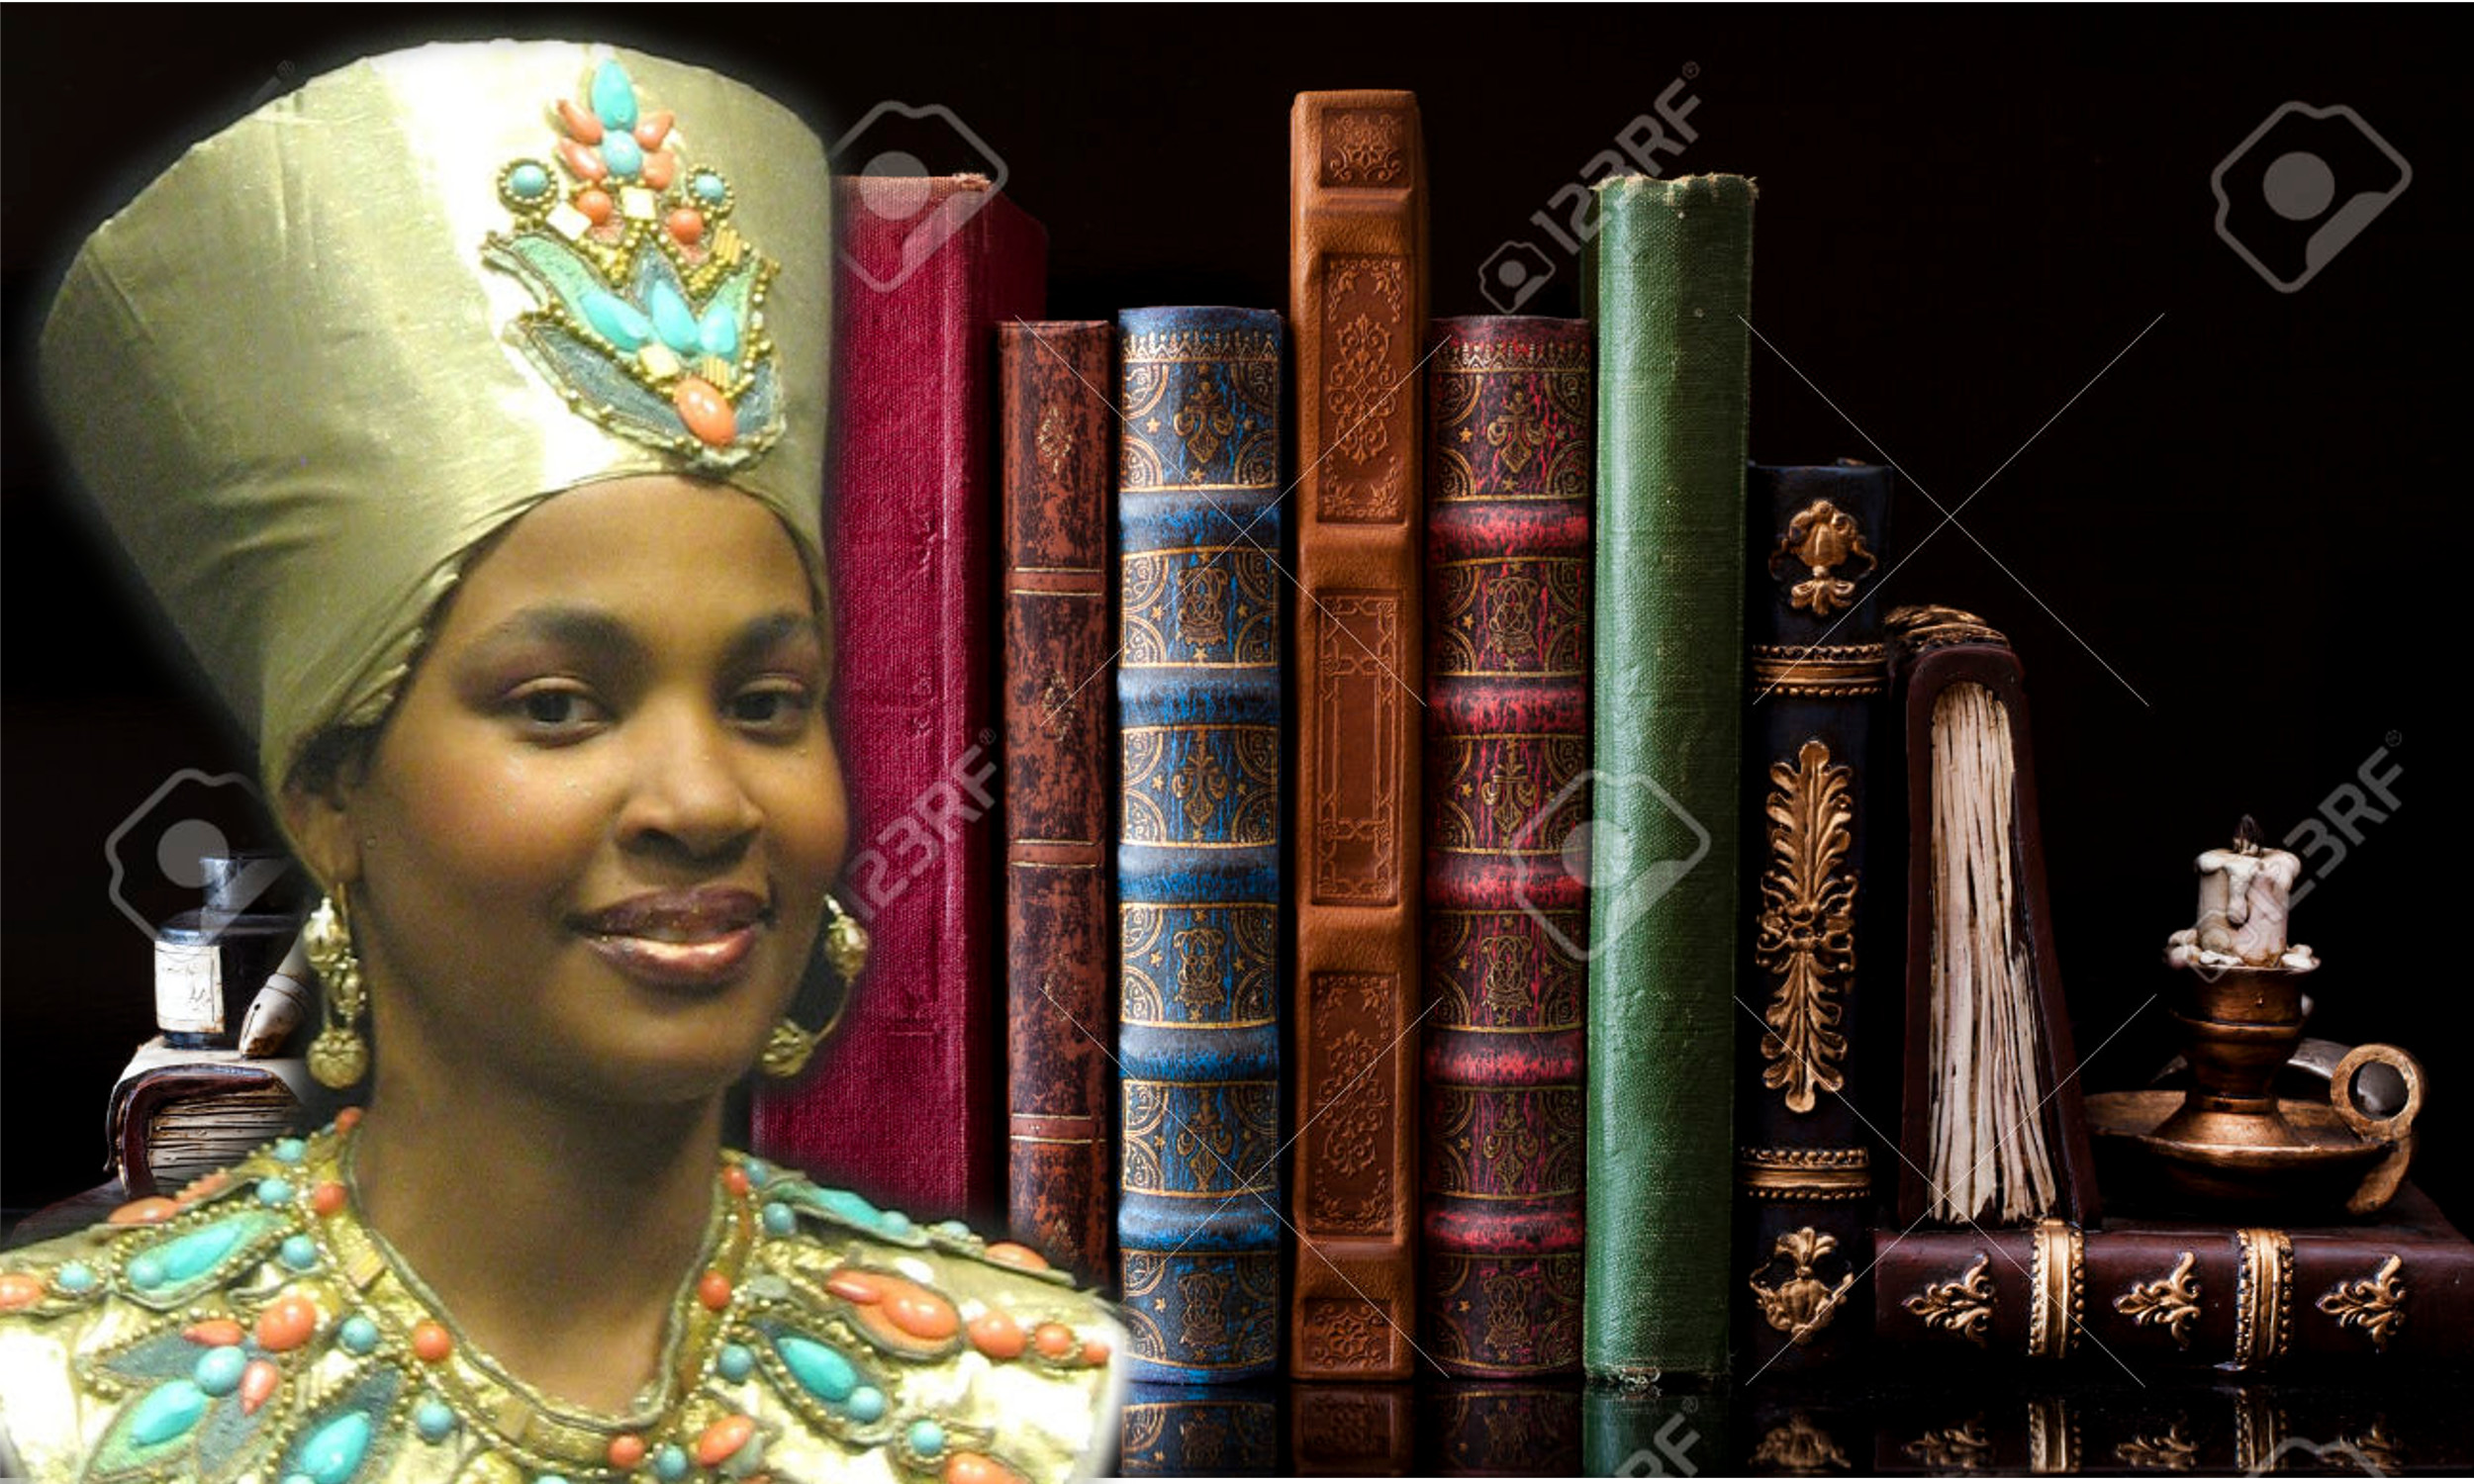 Nefertiti Library.jpg